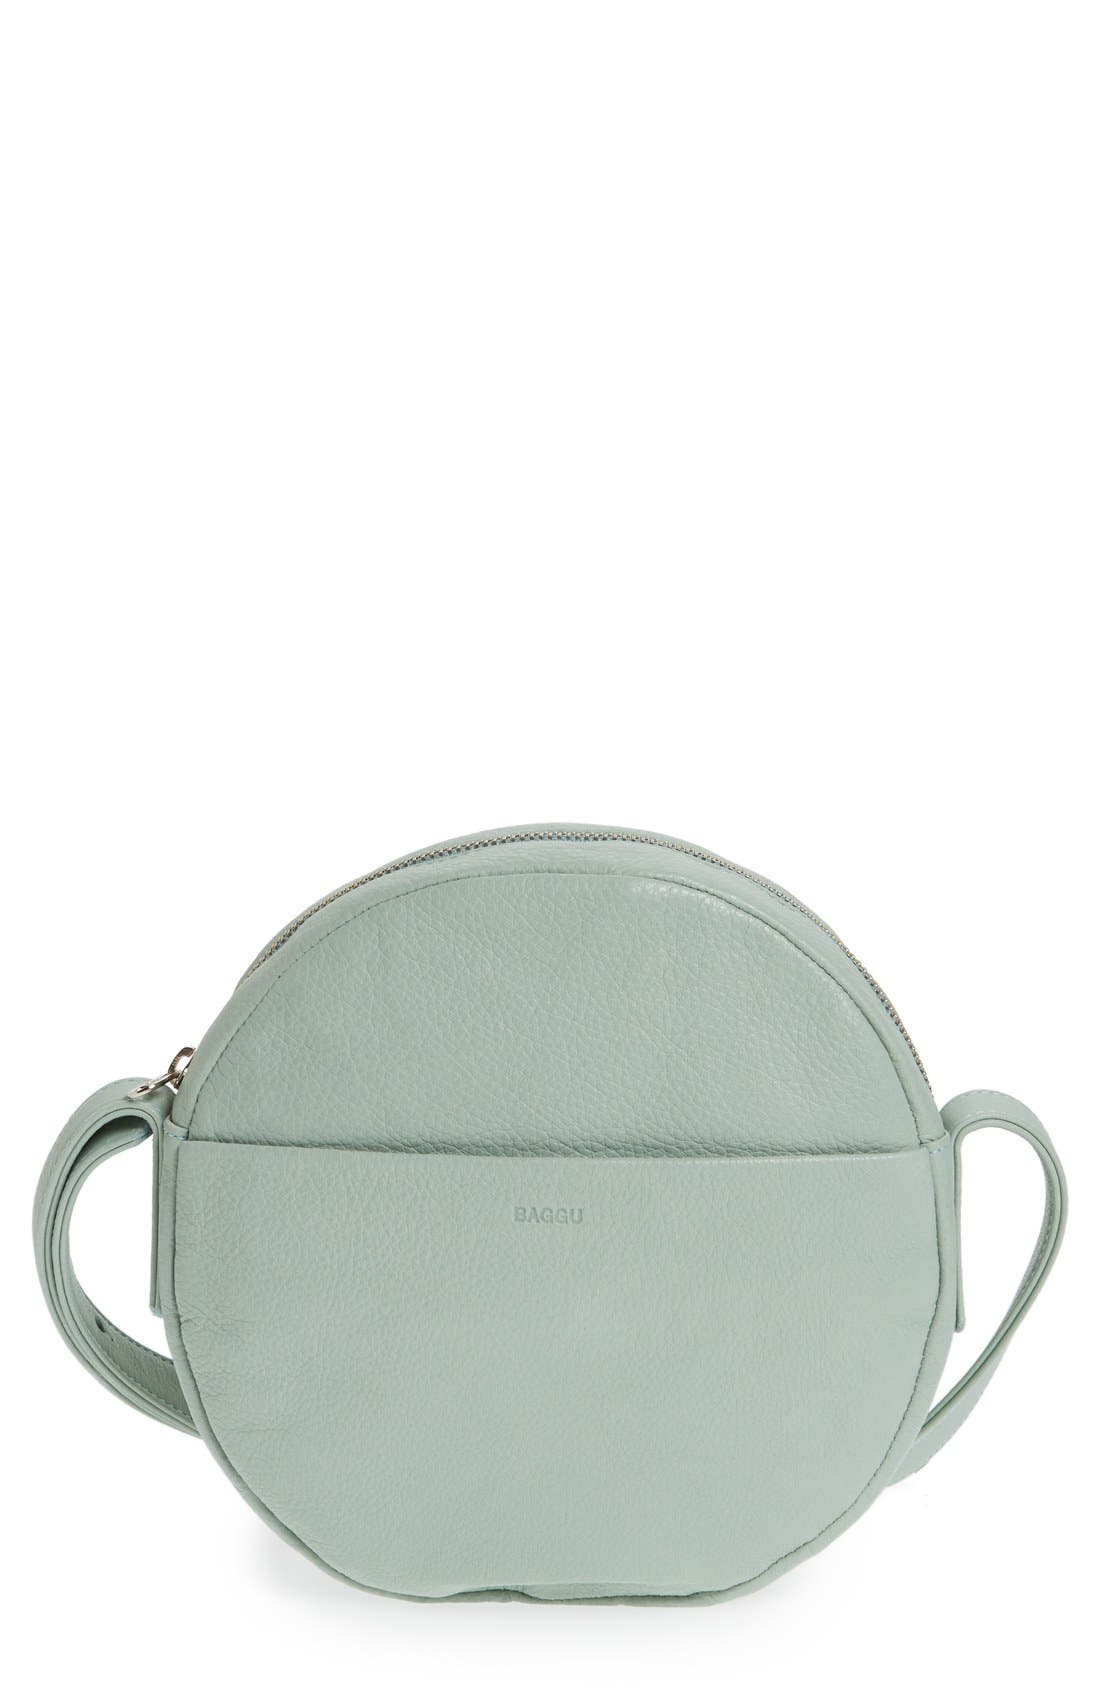 Main Image - Baggu Pebbled Leather Crossbody Bag